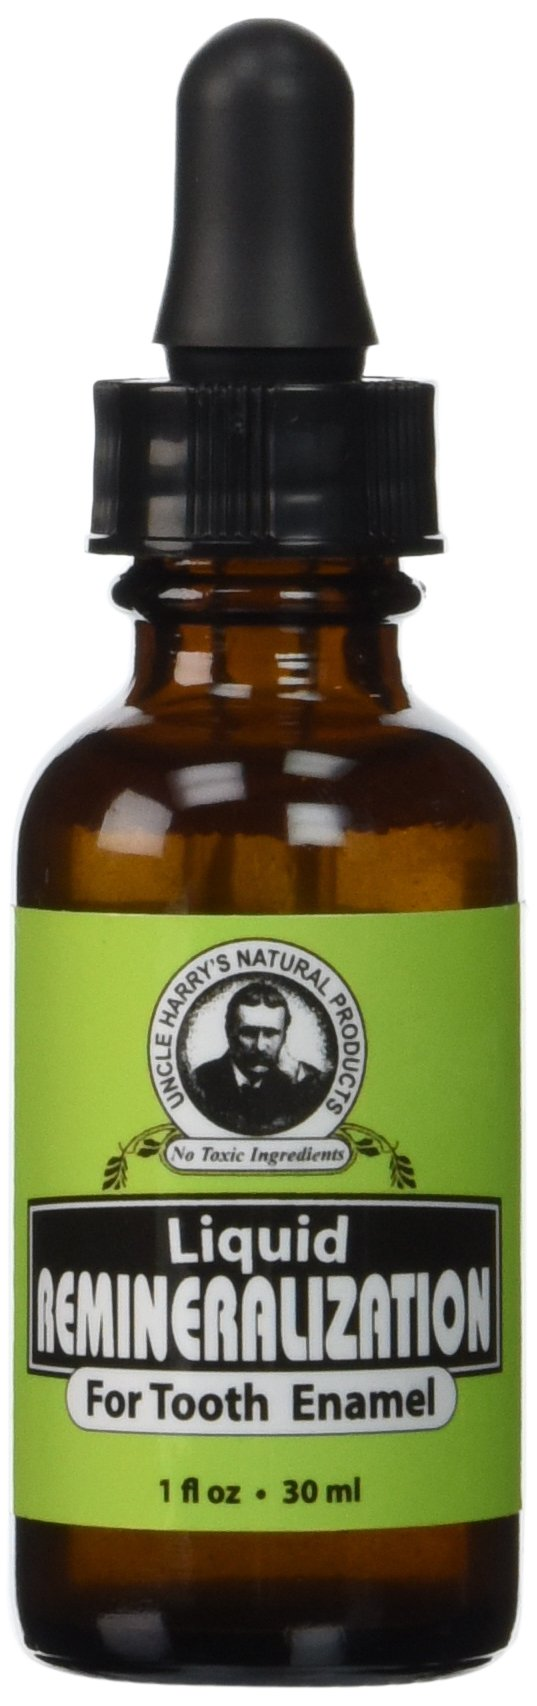 Uncle Harry's Natural & Fluoride-free Remineralization Liquid For Tooth Enamel - Freshens Breath & Strengthens Teeth (1 oz.)